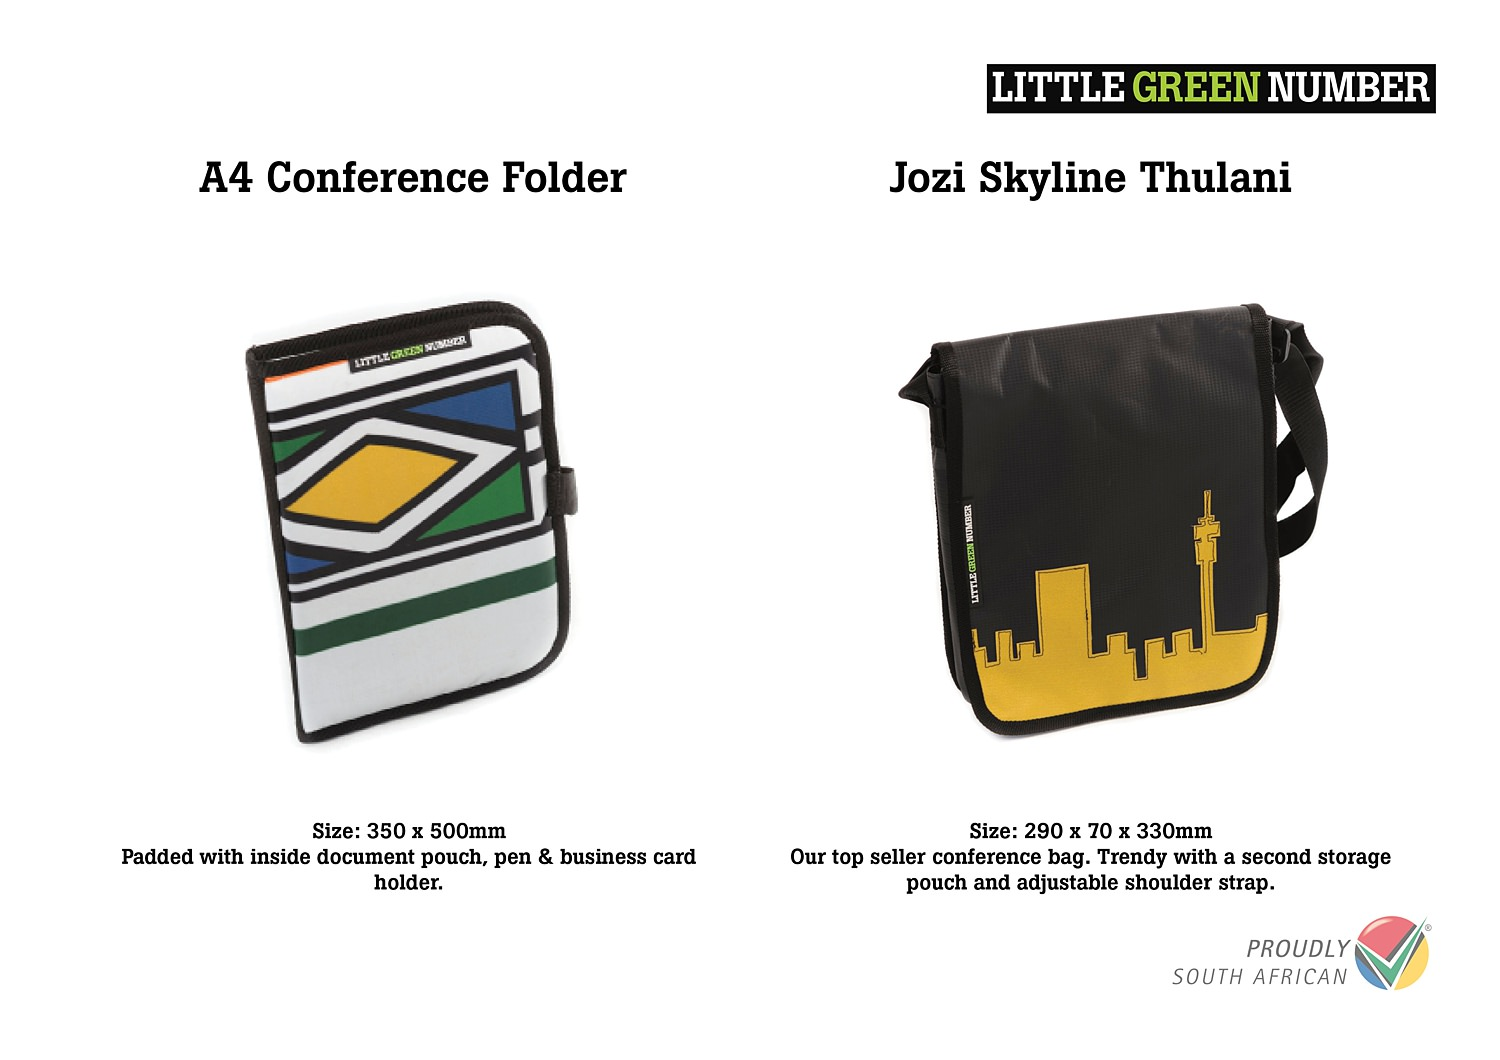 Little Green Number Catalogue Buy1give1 upcycling billboards gauteng5.jpg